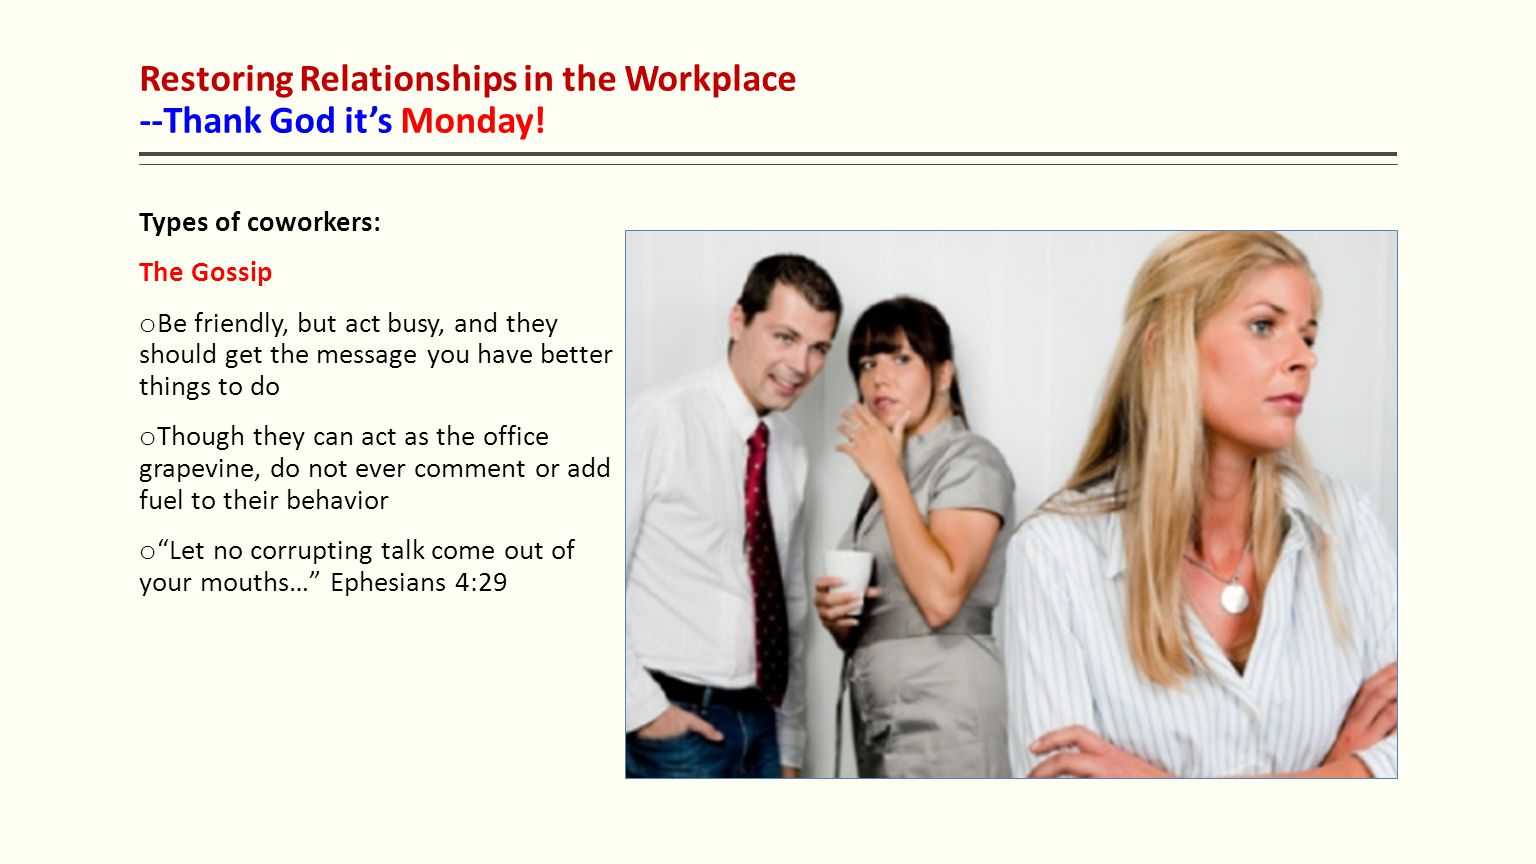 Restoring Relationships in the Workplace --Thank God it's Monday! Types of coworkers: The Gossip o Be friendly, but act busy, and they should get the